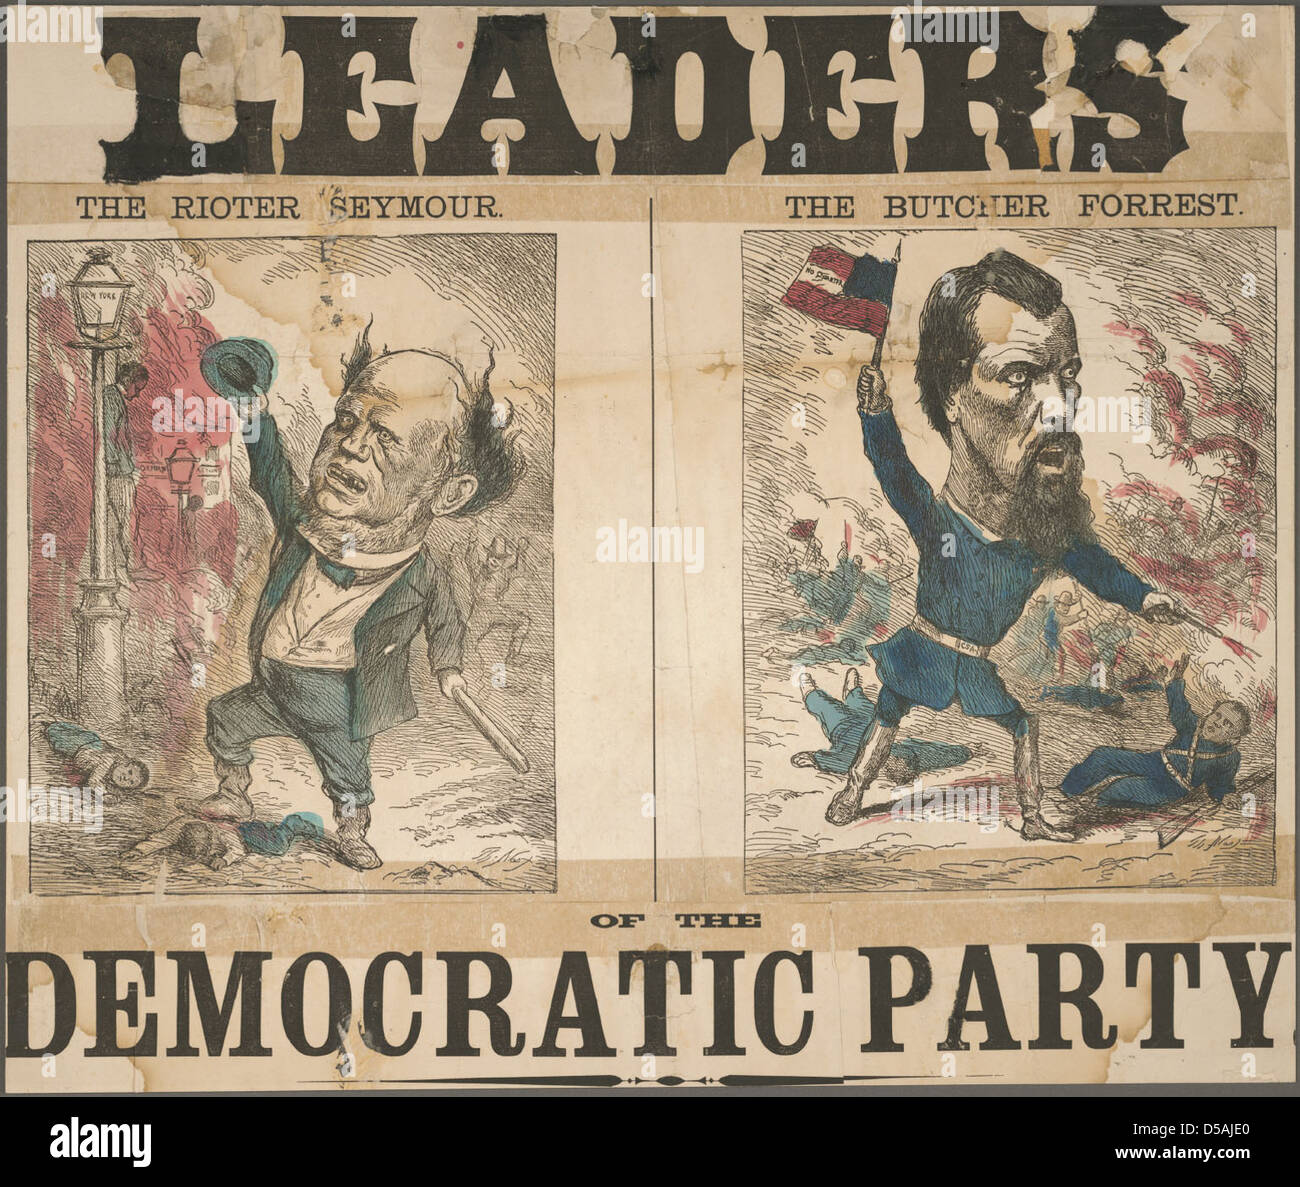 Leaders of the Democratic Party - Stock Image